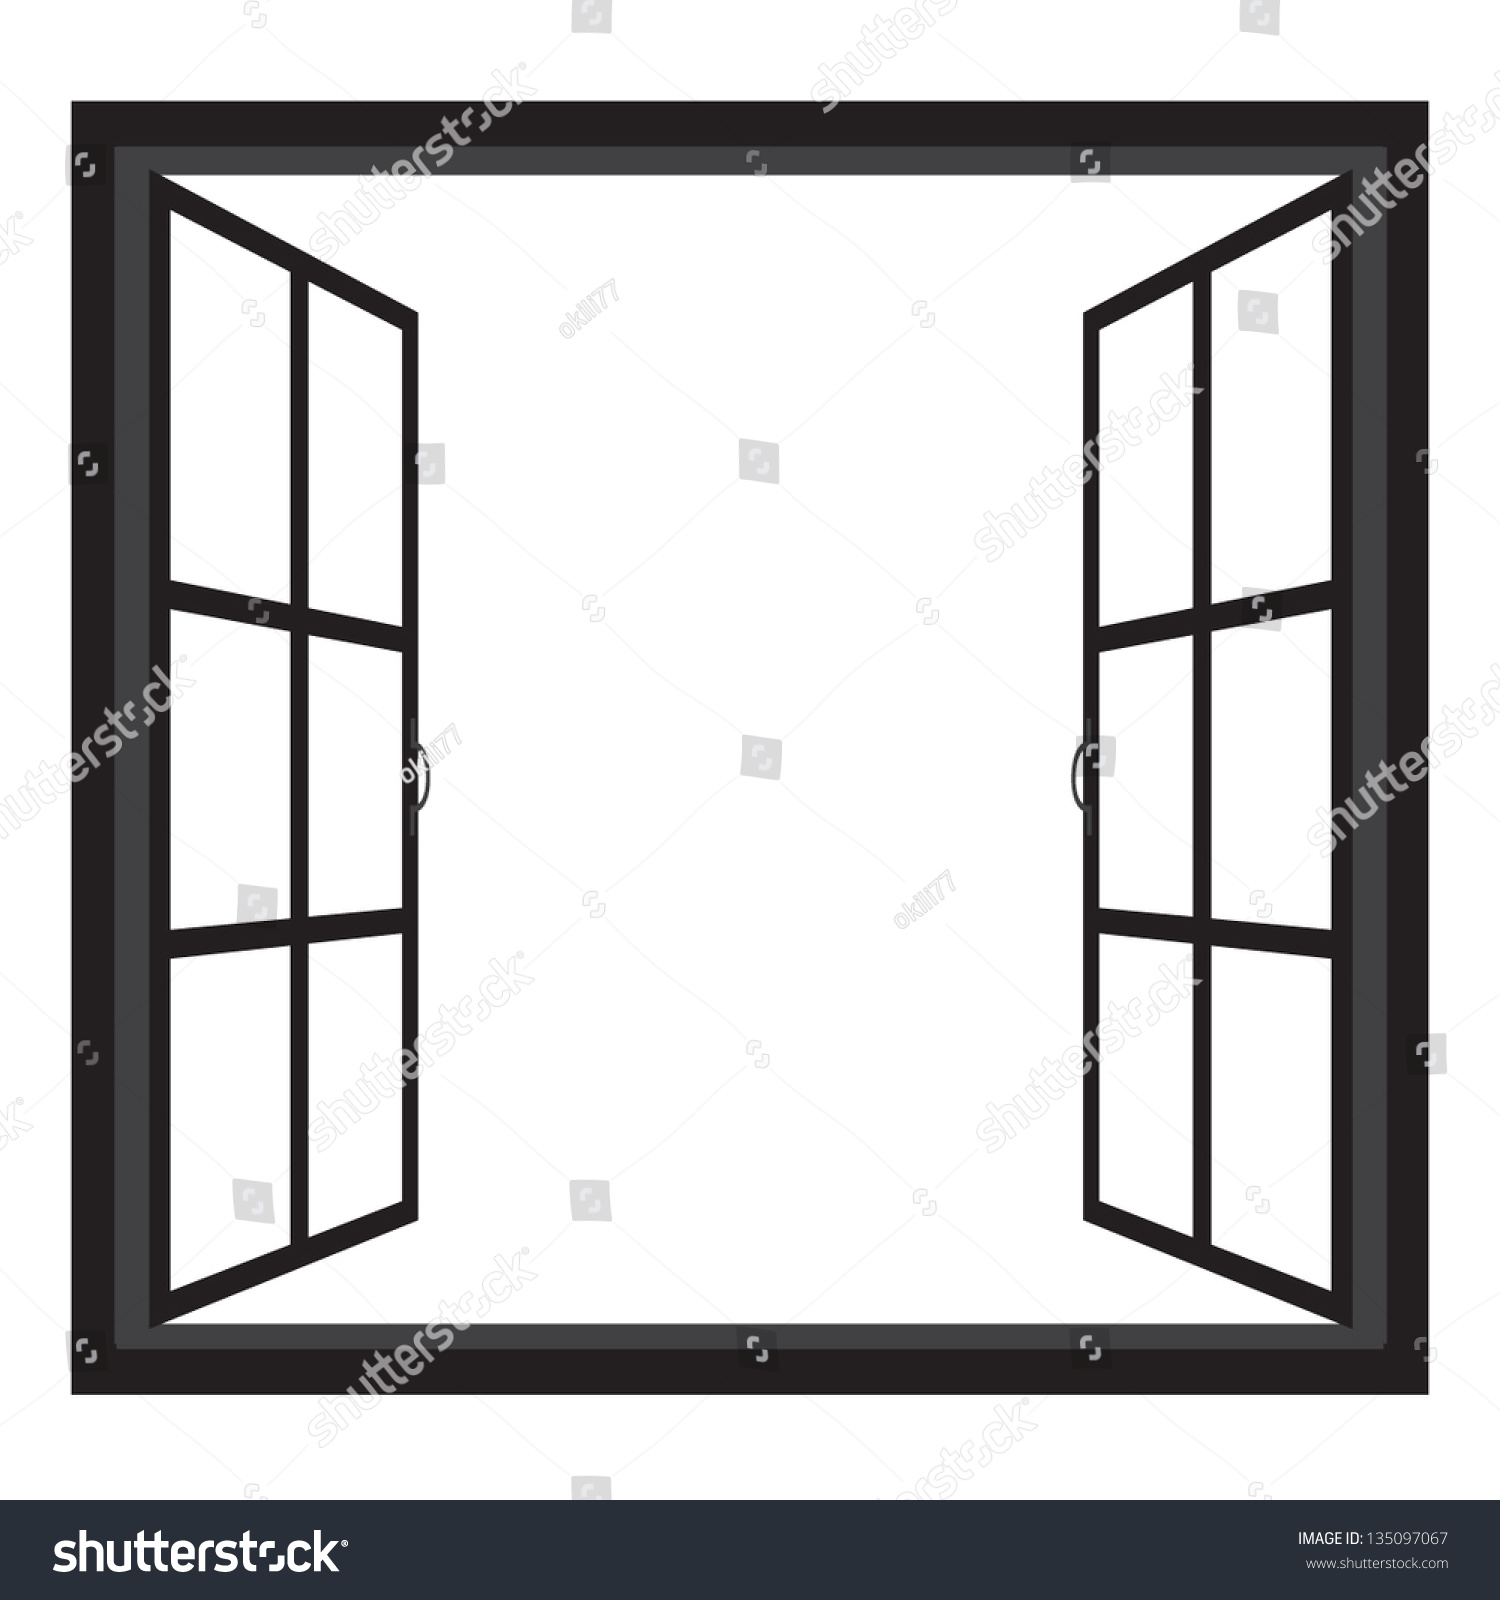 old english home interior design html with Stock Vector Windows Wide Open Window Silhouette Vector on Stock Vector Building Vector Set in addition 86593c00769b4220 furthermore 37f447ab8fdbcc97 also 10 Interesting Facts About Earthworms 1881871982 together with Fireplaces upstate ny restaurants hotel brewery pub fire place.